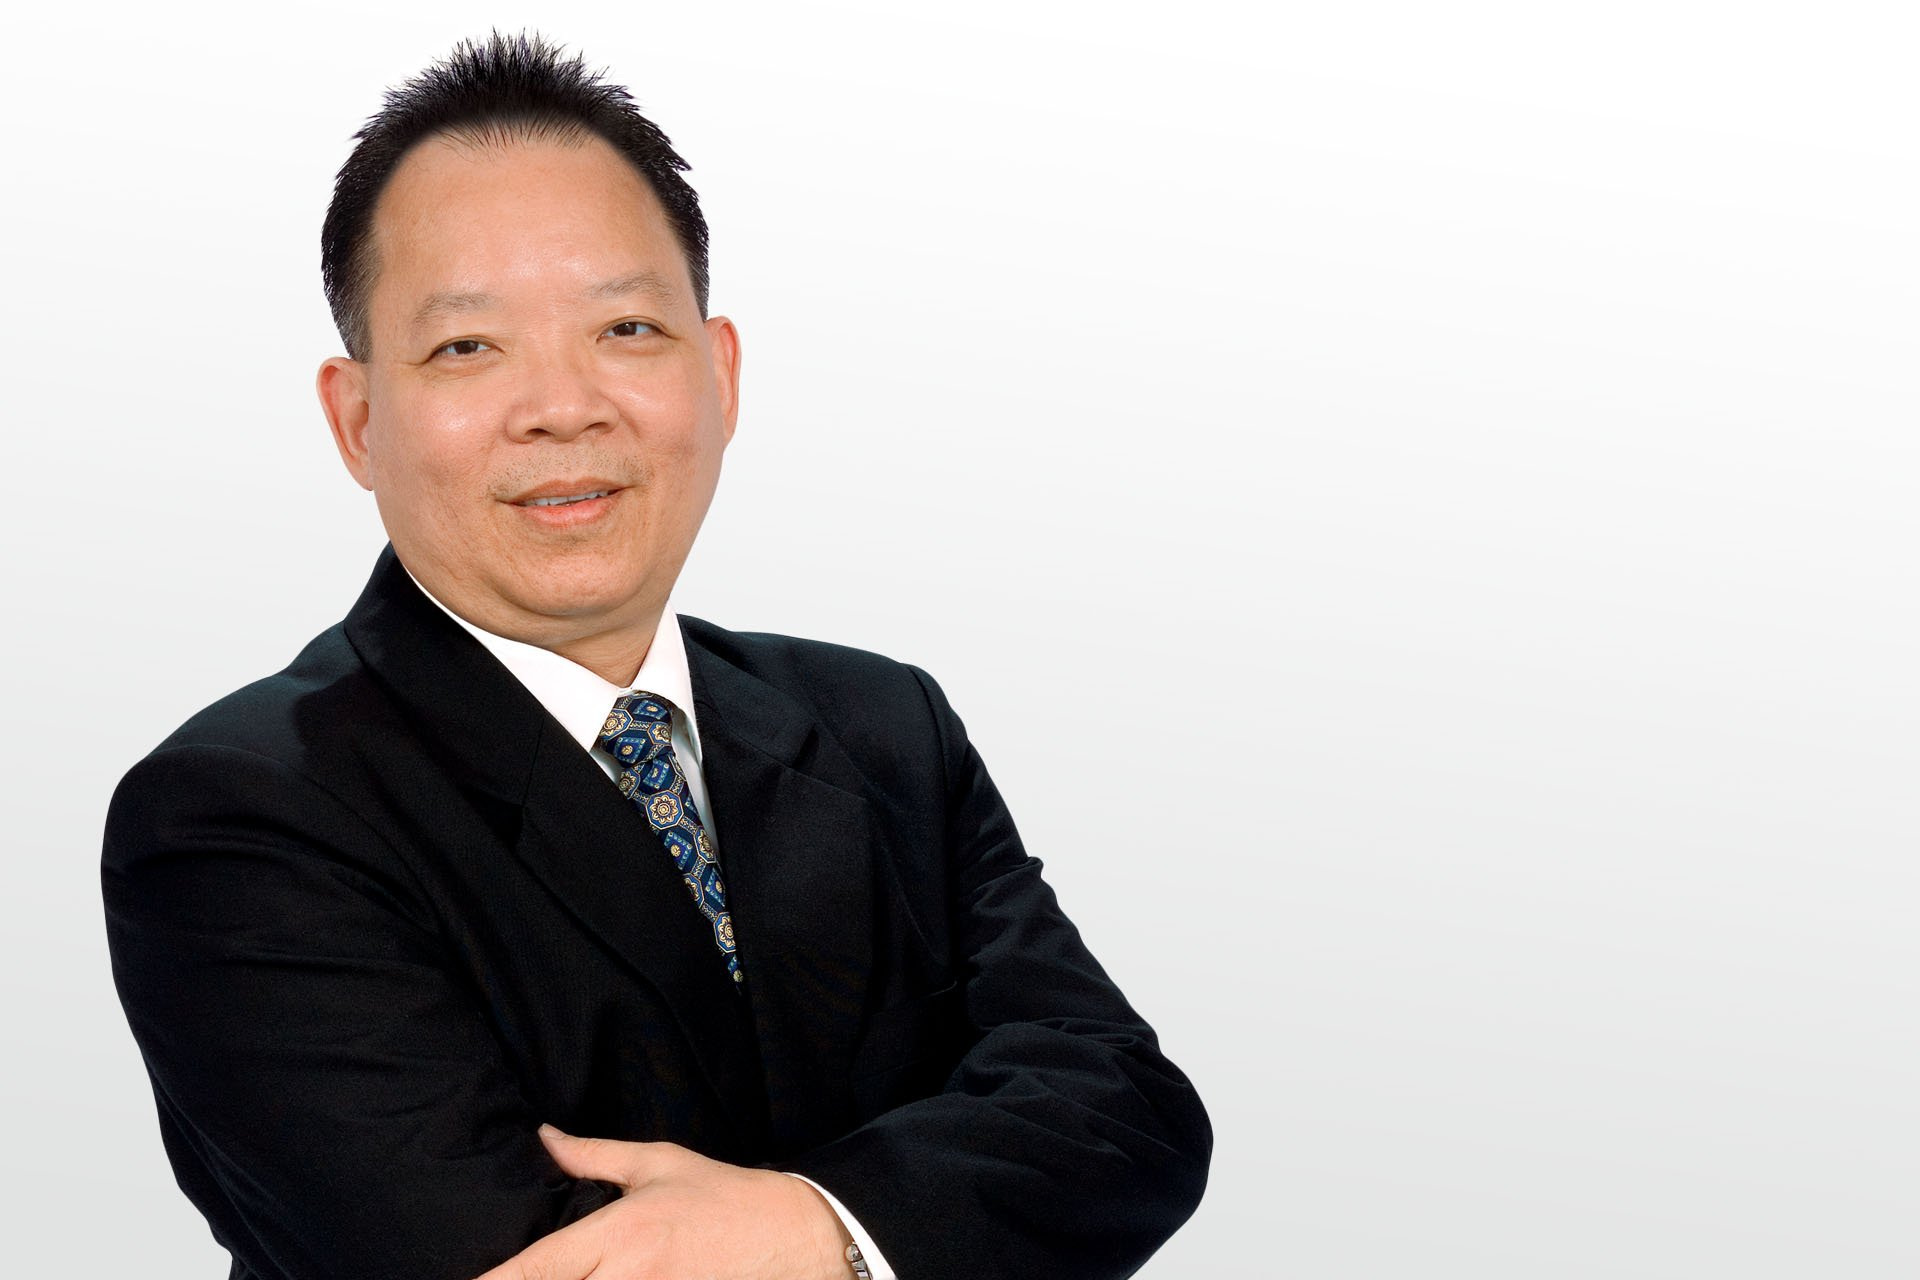 Dr. Aloysius Low, Malaysia<br>(about versatility and mobility of the Ziemer FEMTO LDV)